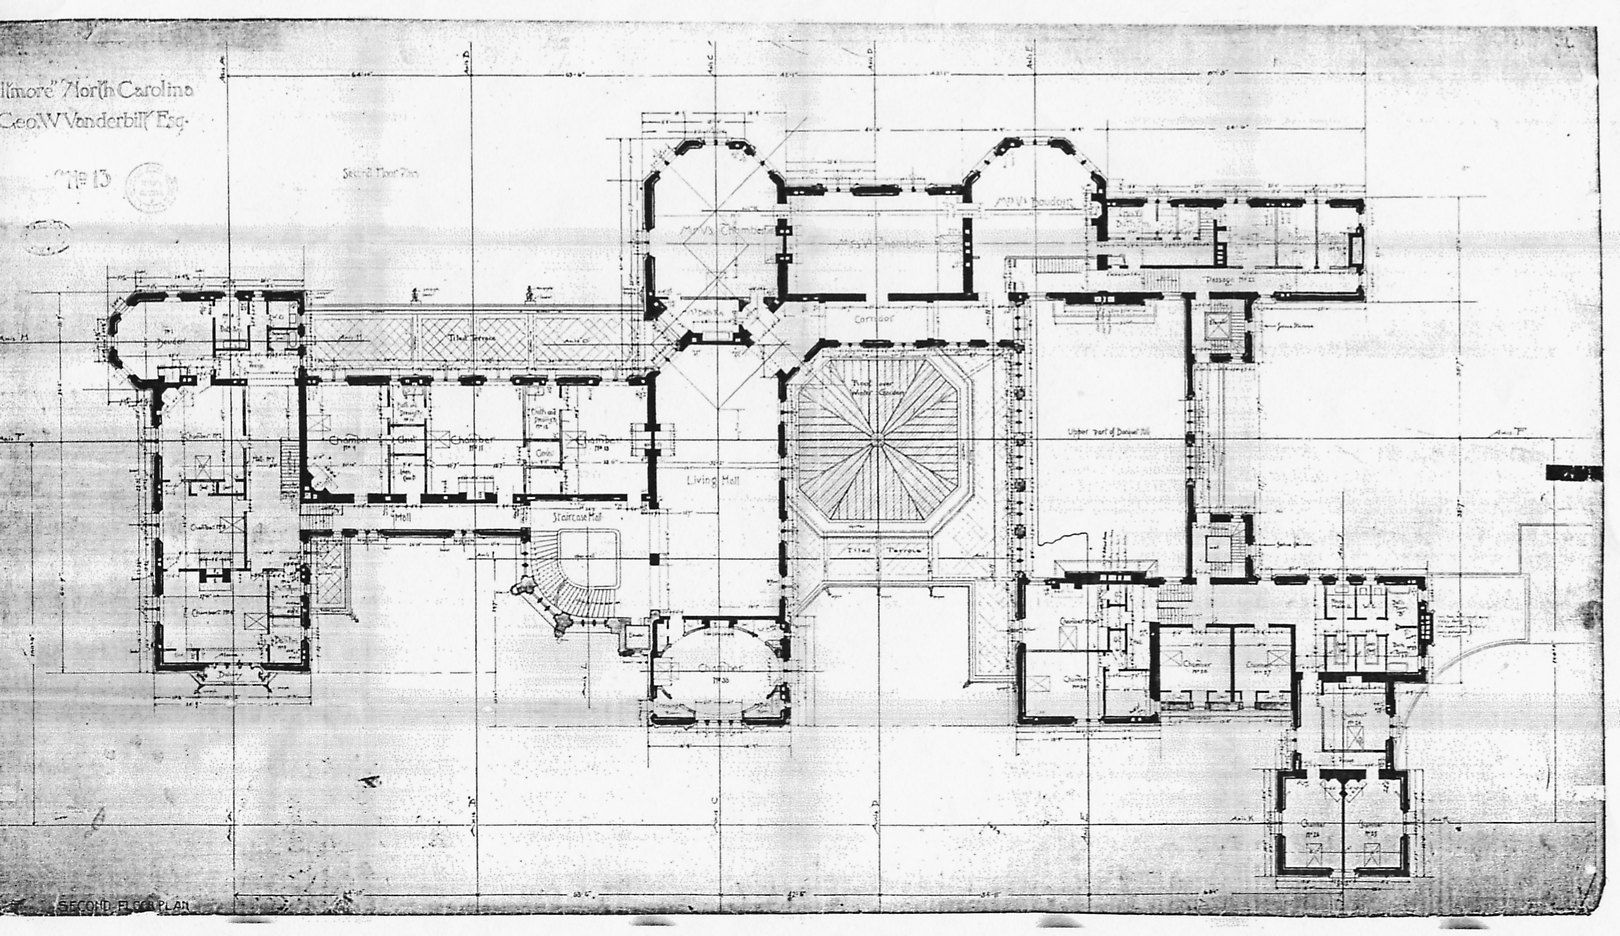 Biltmore house floor plan drawings plans for Biltmore estate floor plan